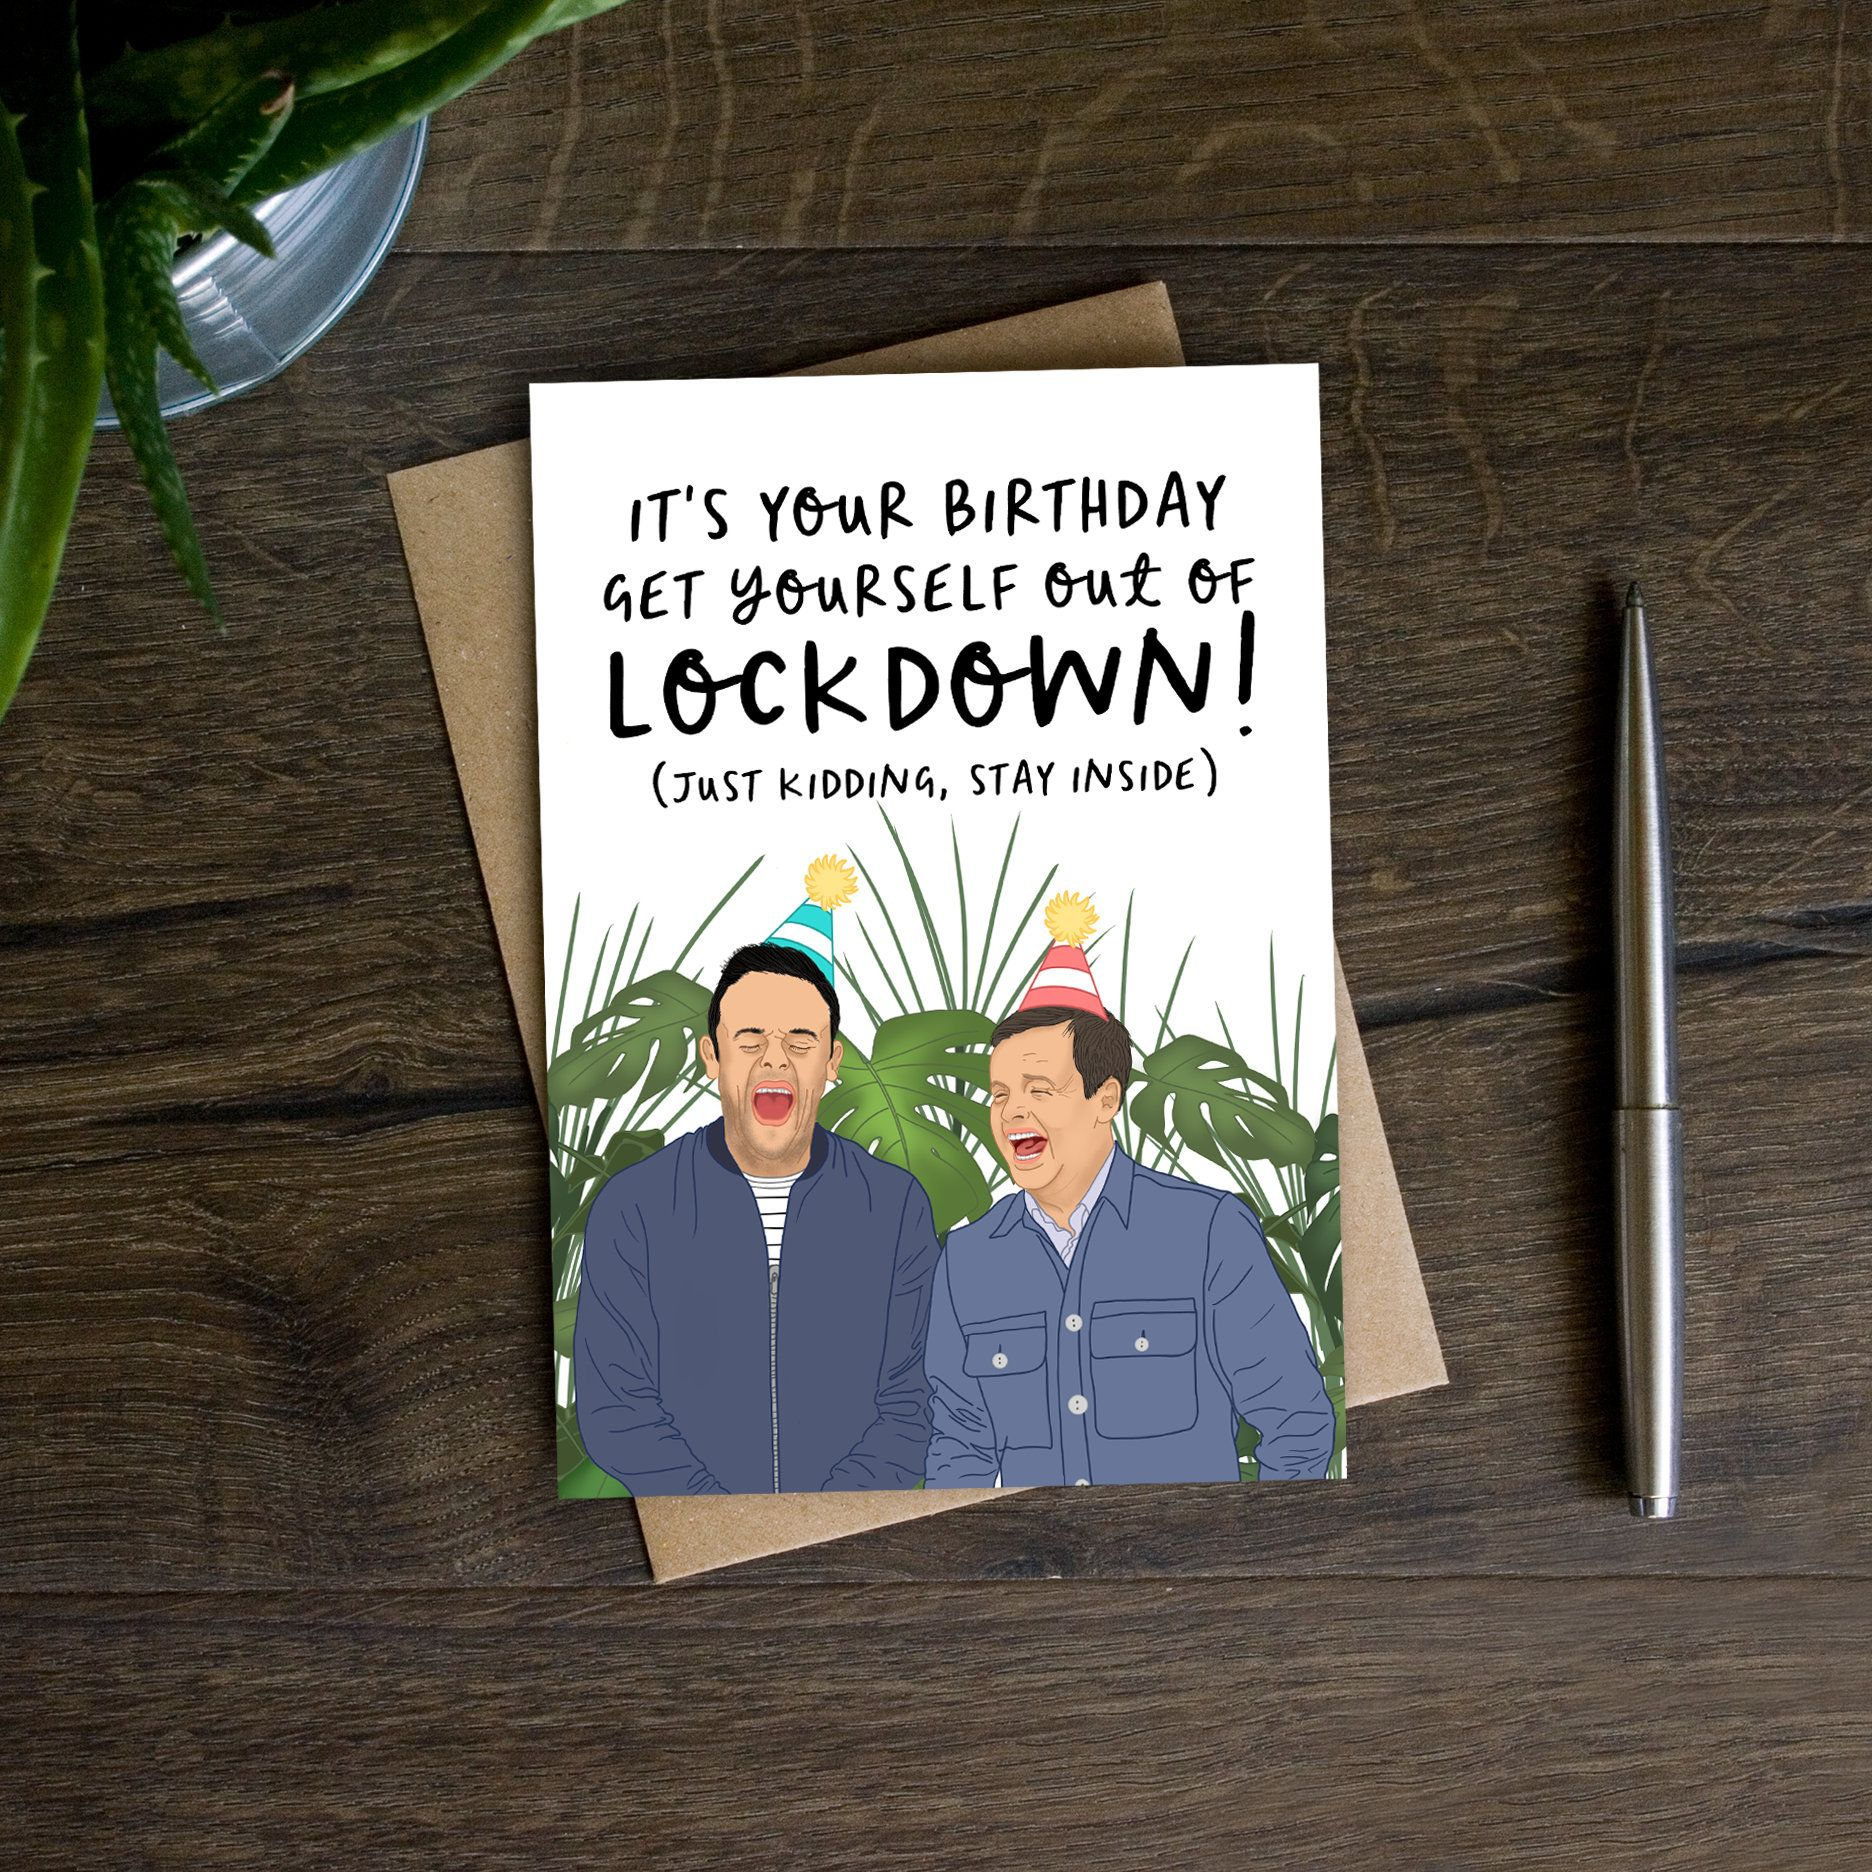 Ant And Dec Birthday Card I M A Celebrity Get Me Out Of Here Jungle Funny Lockdown Card For Him 2021 Birthday Card For Her 036 Birthday Cards For Her Birthday